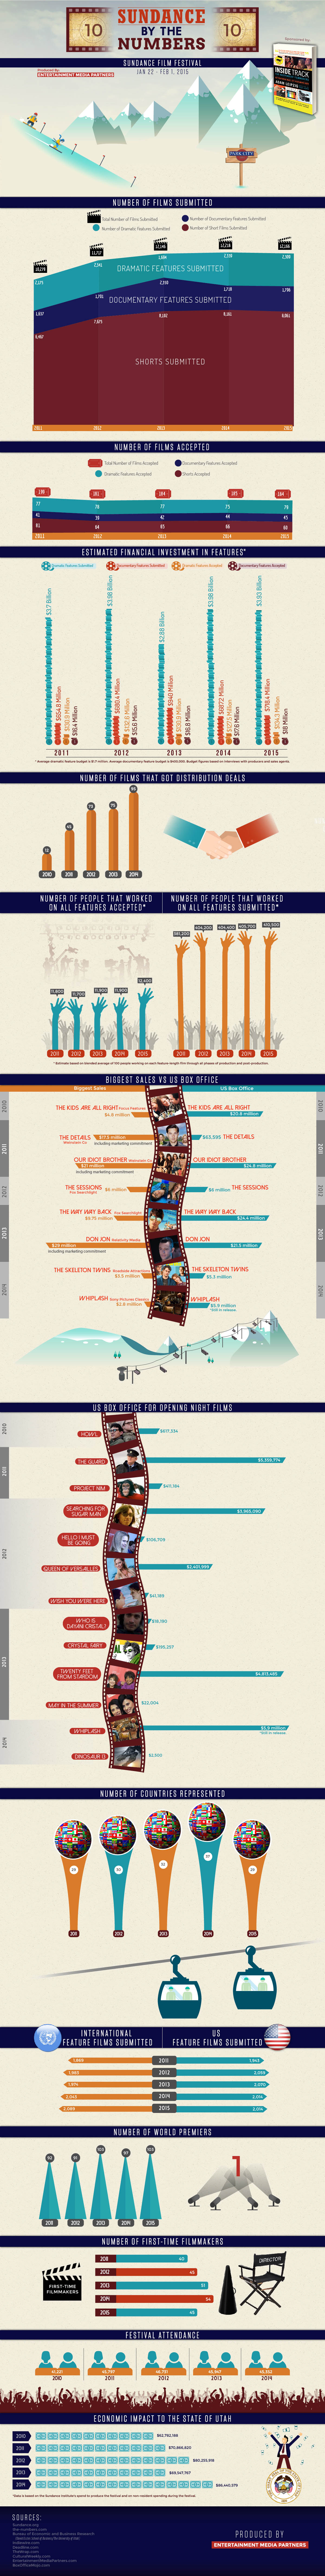 Sundance 2015 By The Numbers